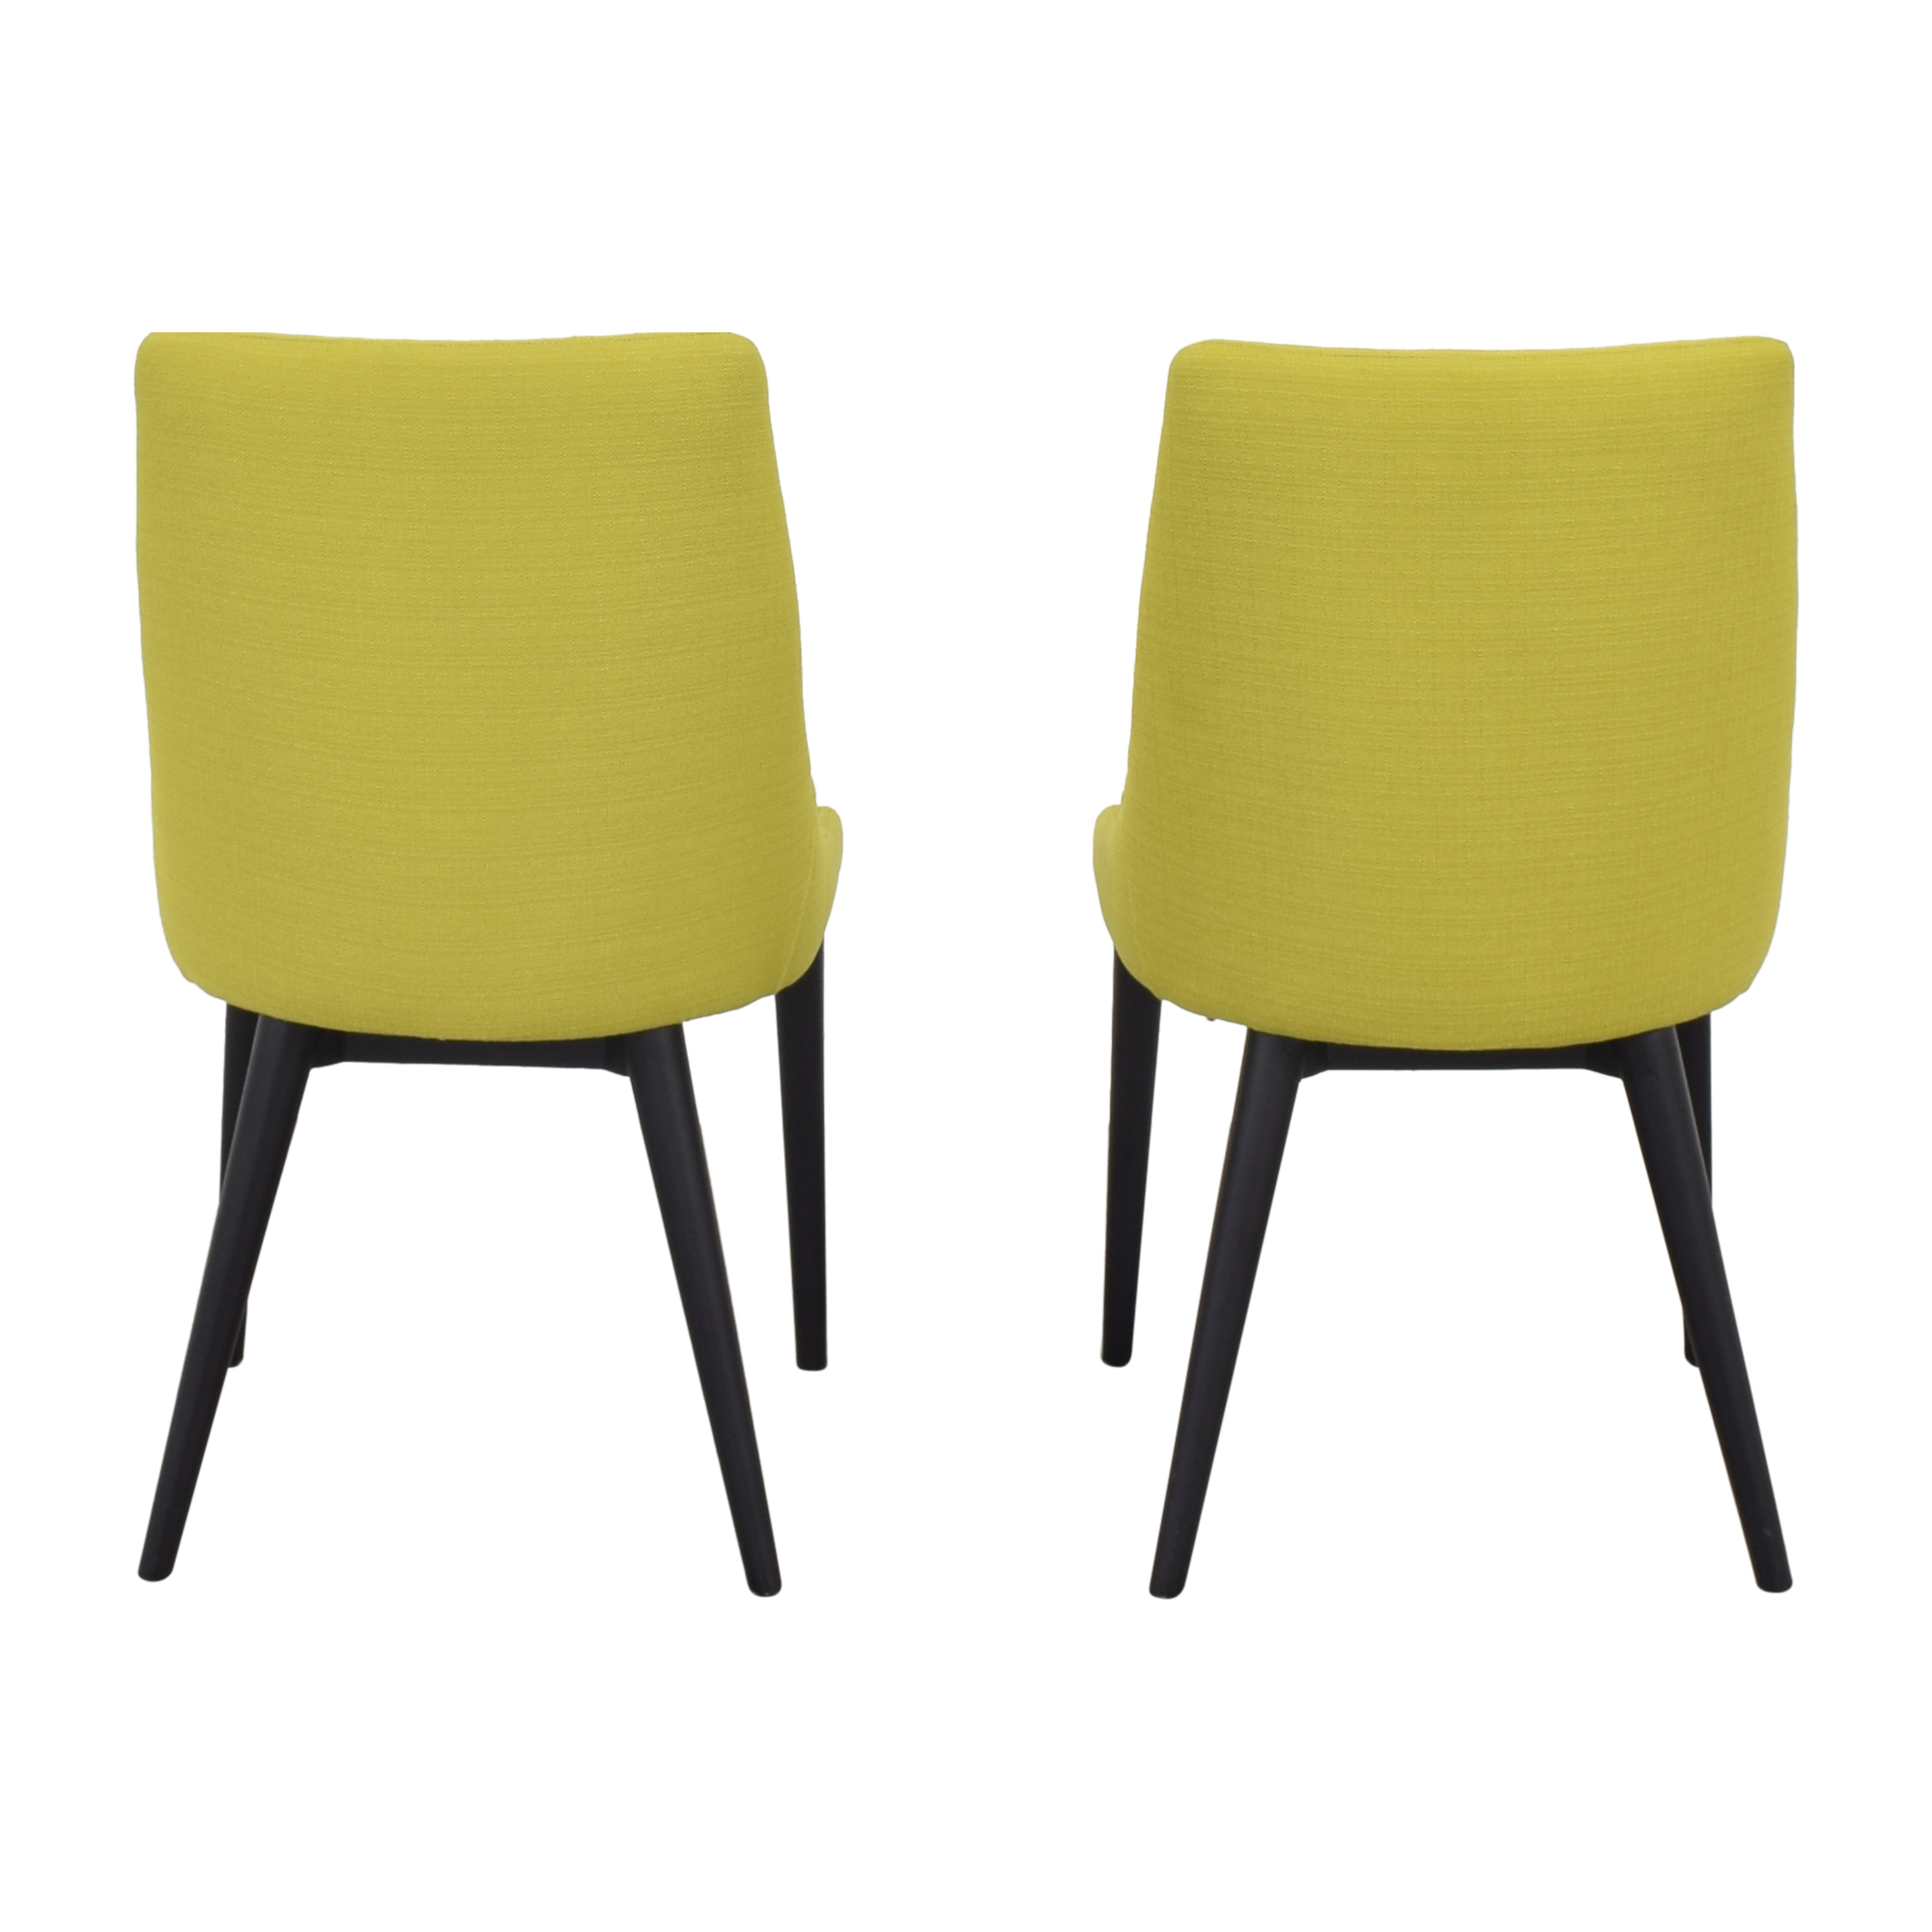 Modway Modway Viscount Dining Chairs for sale